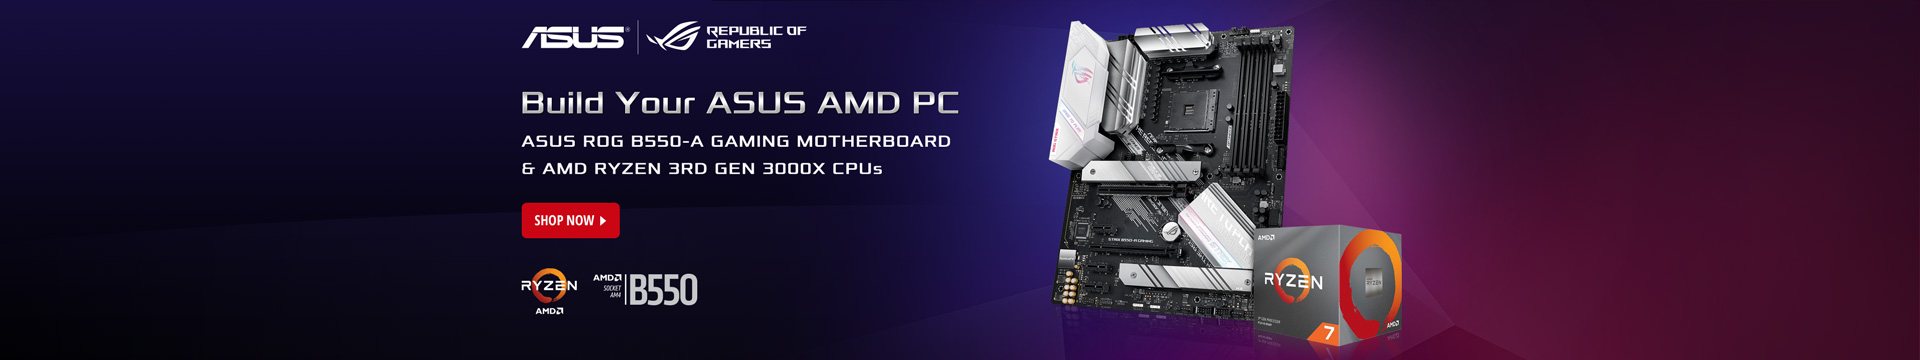 Build Your ASUS AMD PC